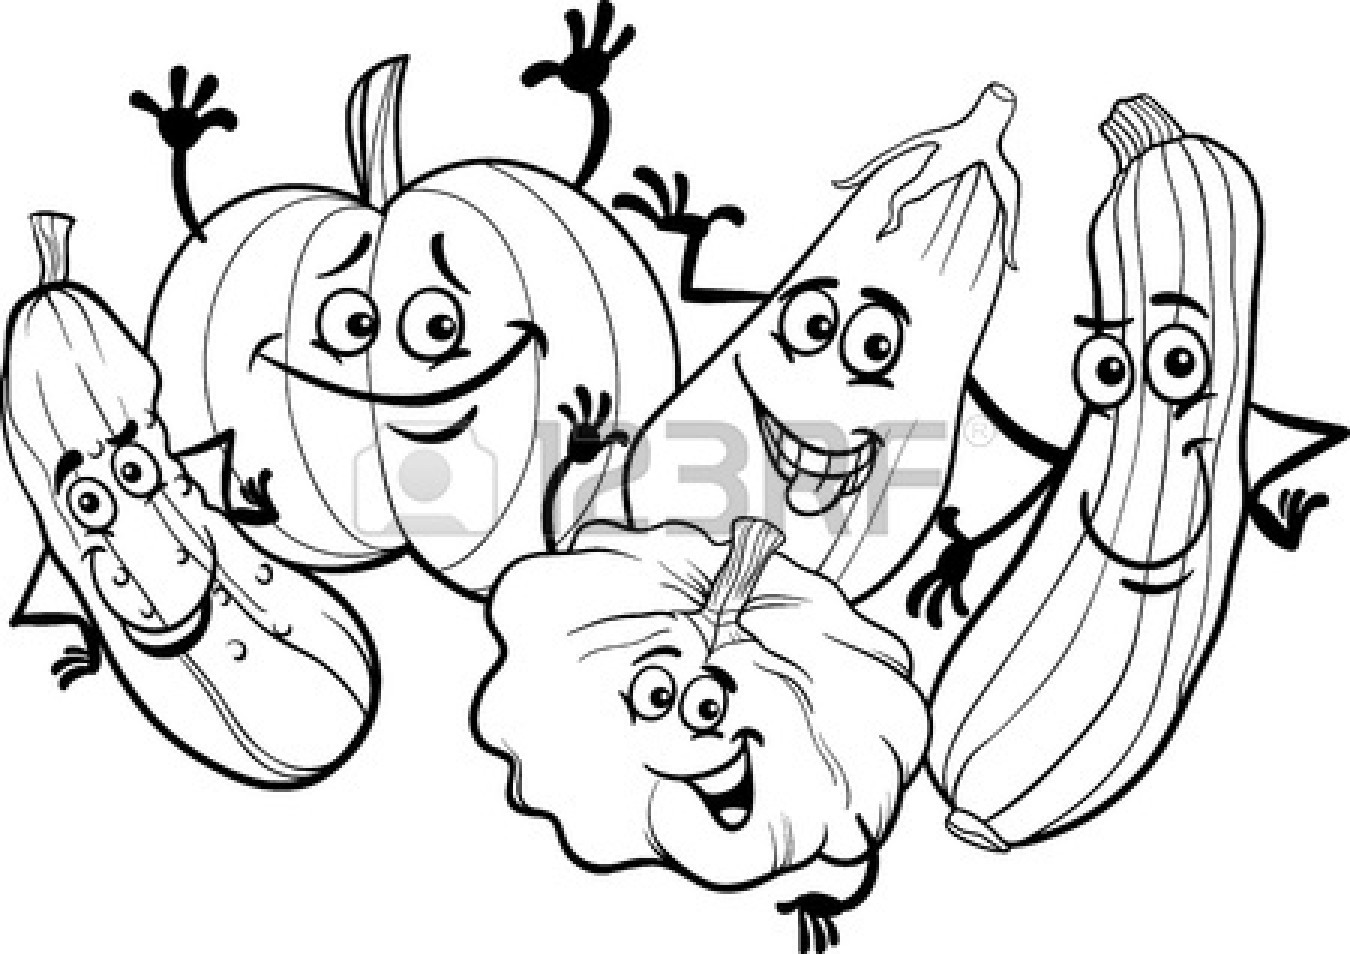 Child eating vegetables clipart black and white image Fruit And Vegetable Clipart Black And White   Free download best ... image